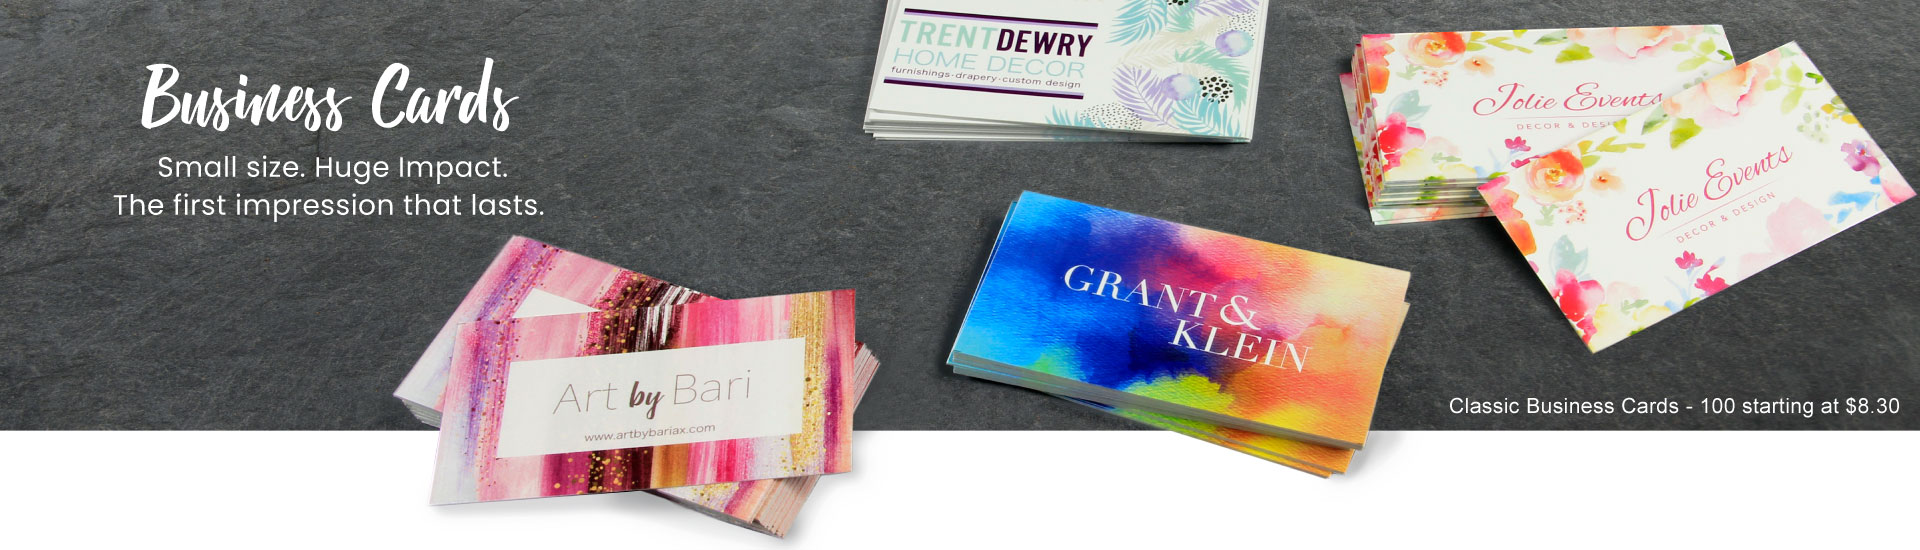 Business Cards Banner